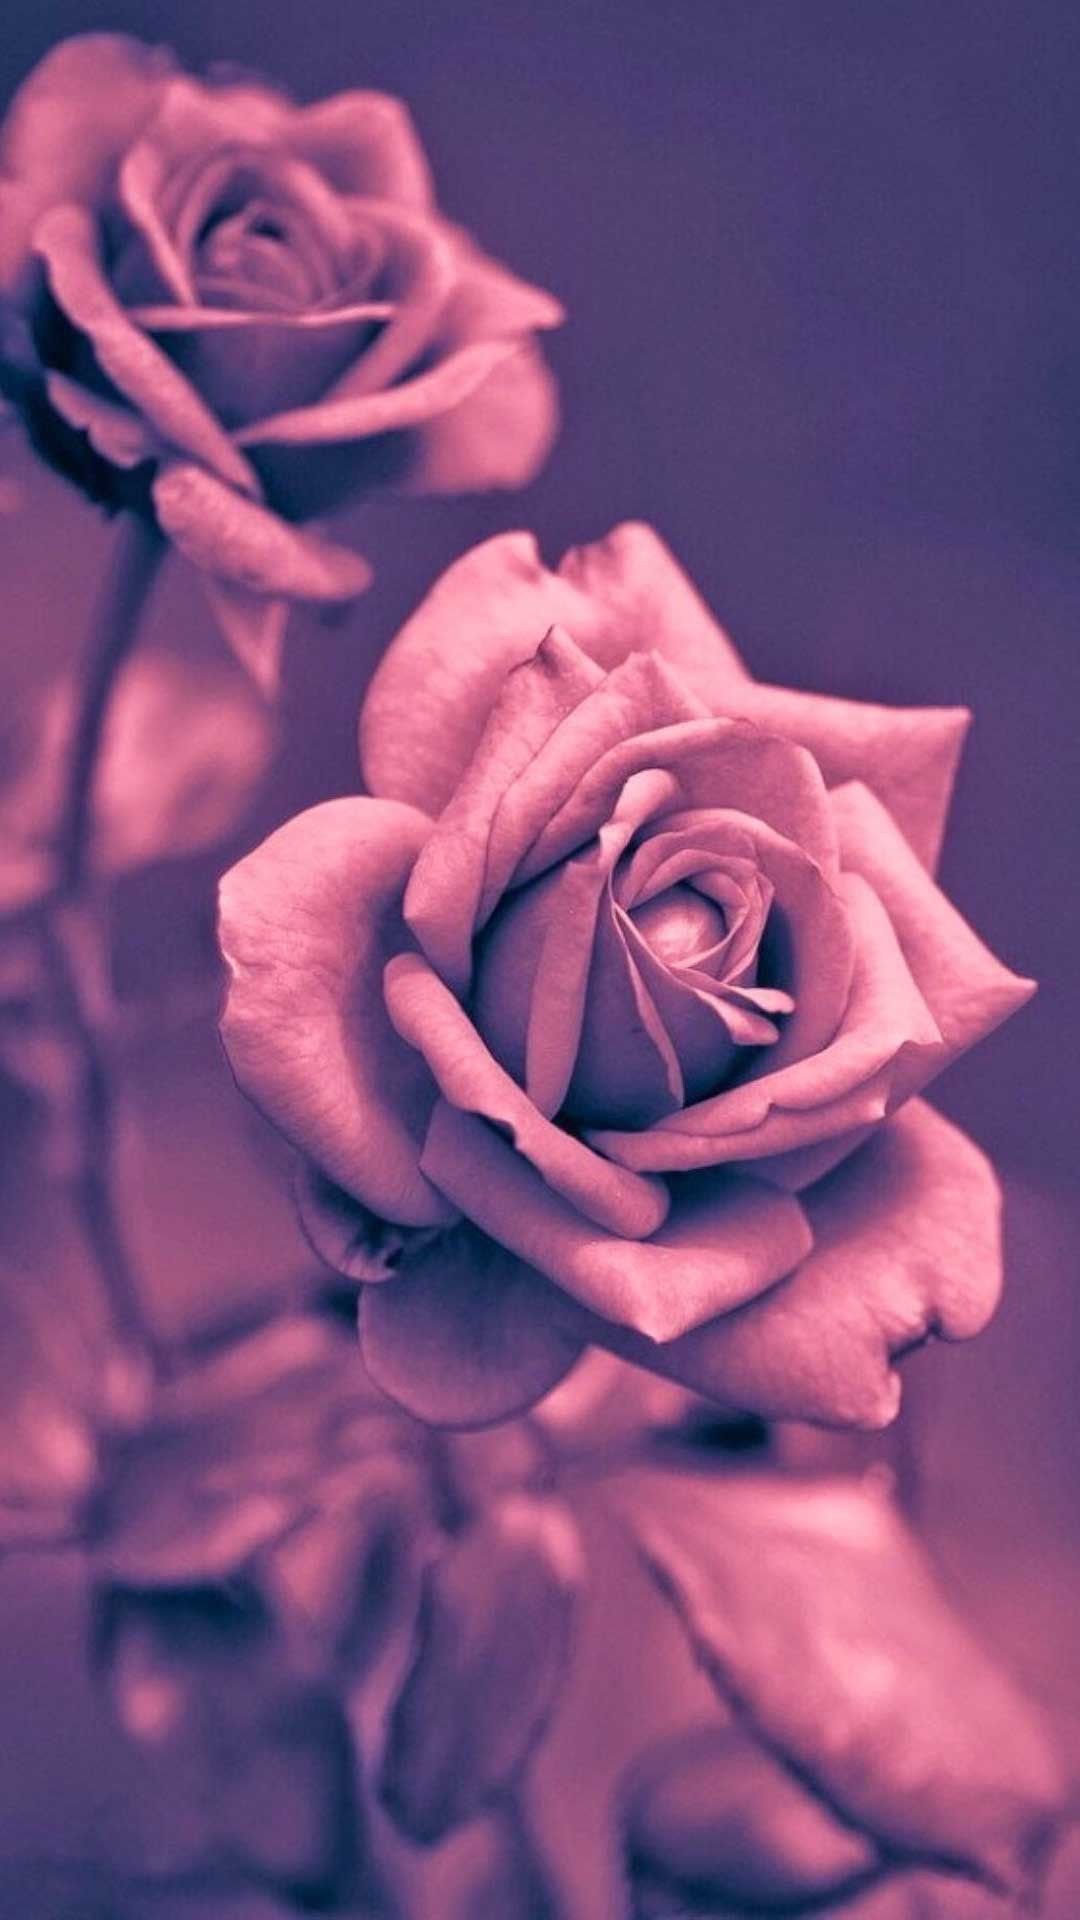 Rose gold iphone wallpaper 79 images - Pink rose black background wallpaper ...